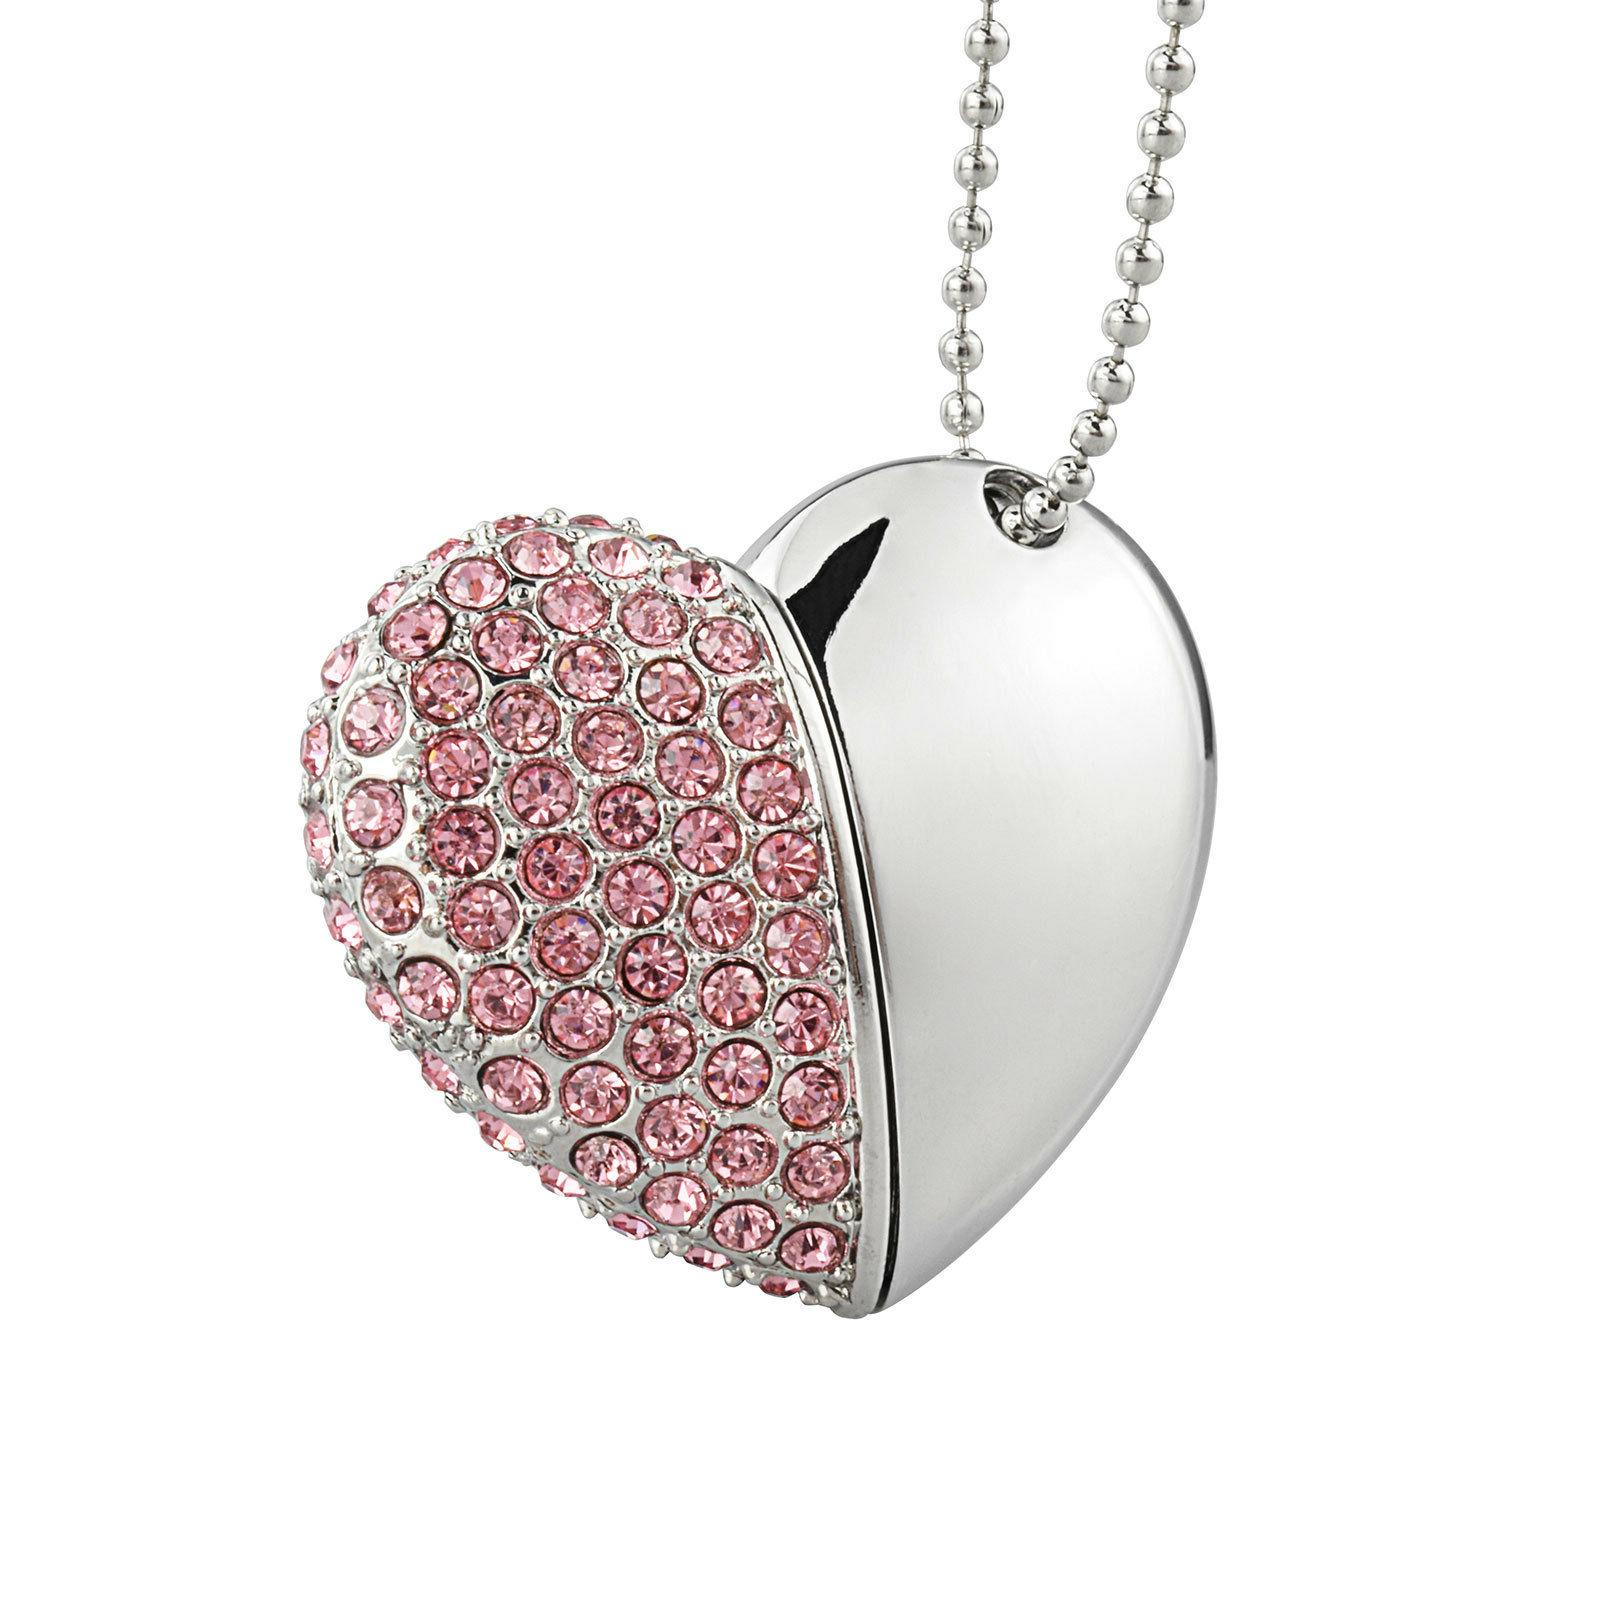 Crystal Heart Memory USB2.0 Flash Drive Disk